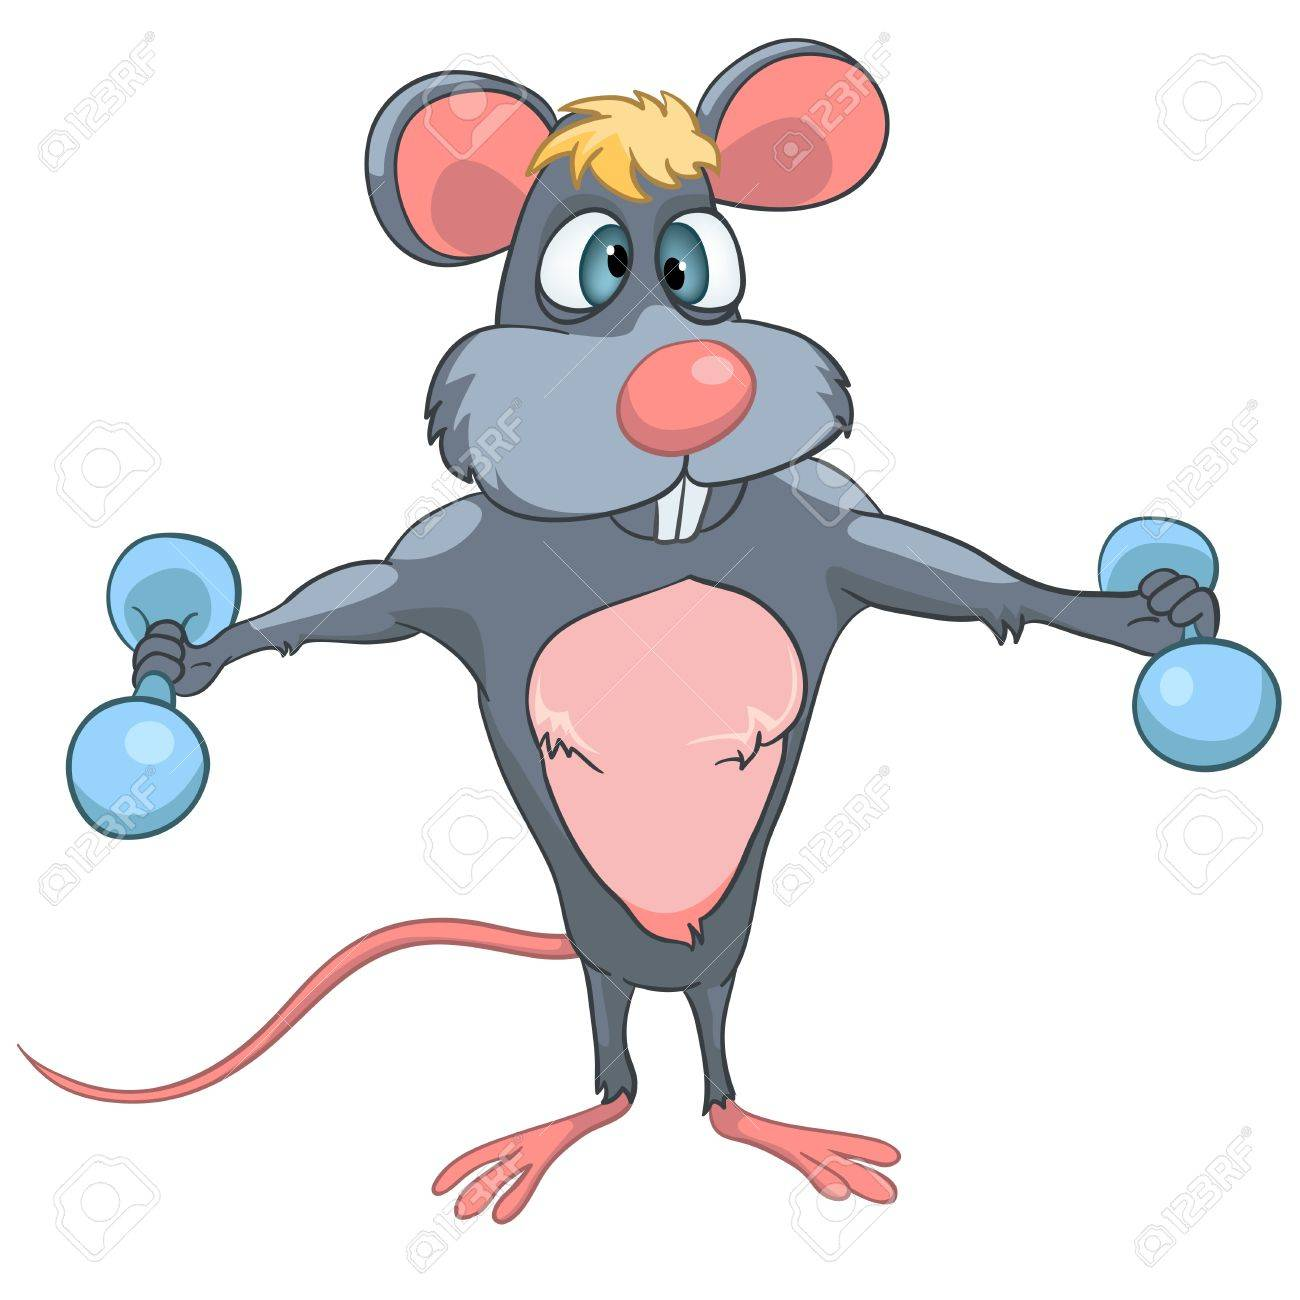 Cartoon Character Mouse Stock Vector - 11929362